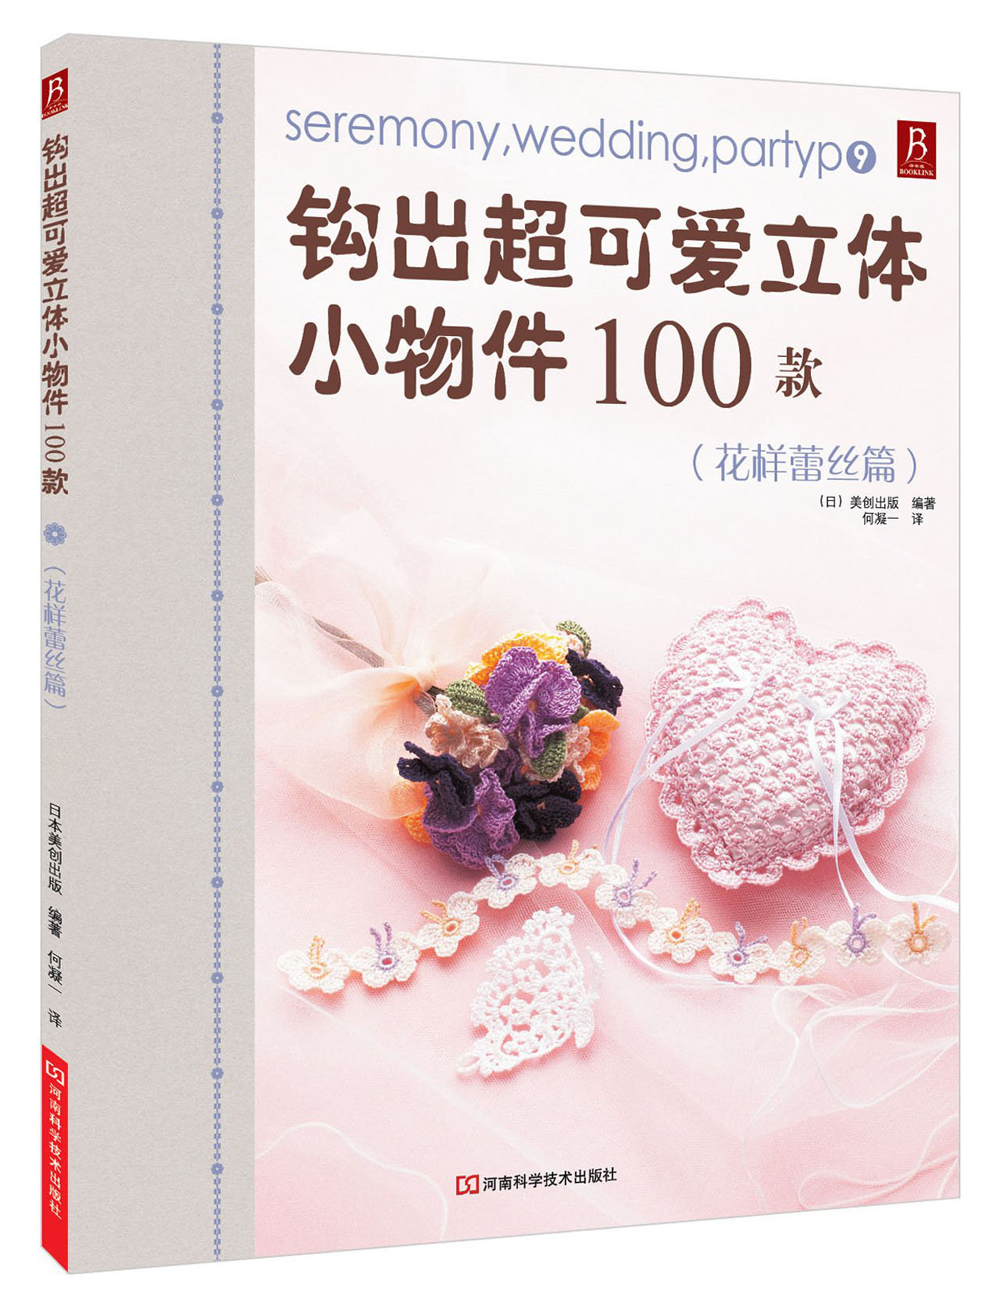 Seremony,Wedding Parthp / Weaving Super-cute 3d Small Objects 100 Models Chinese Knitting Book / Handmade Carft Book